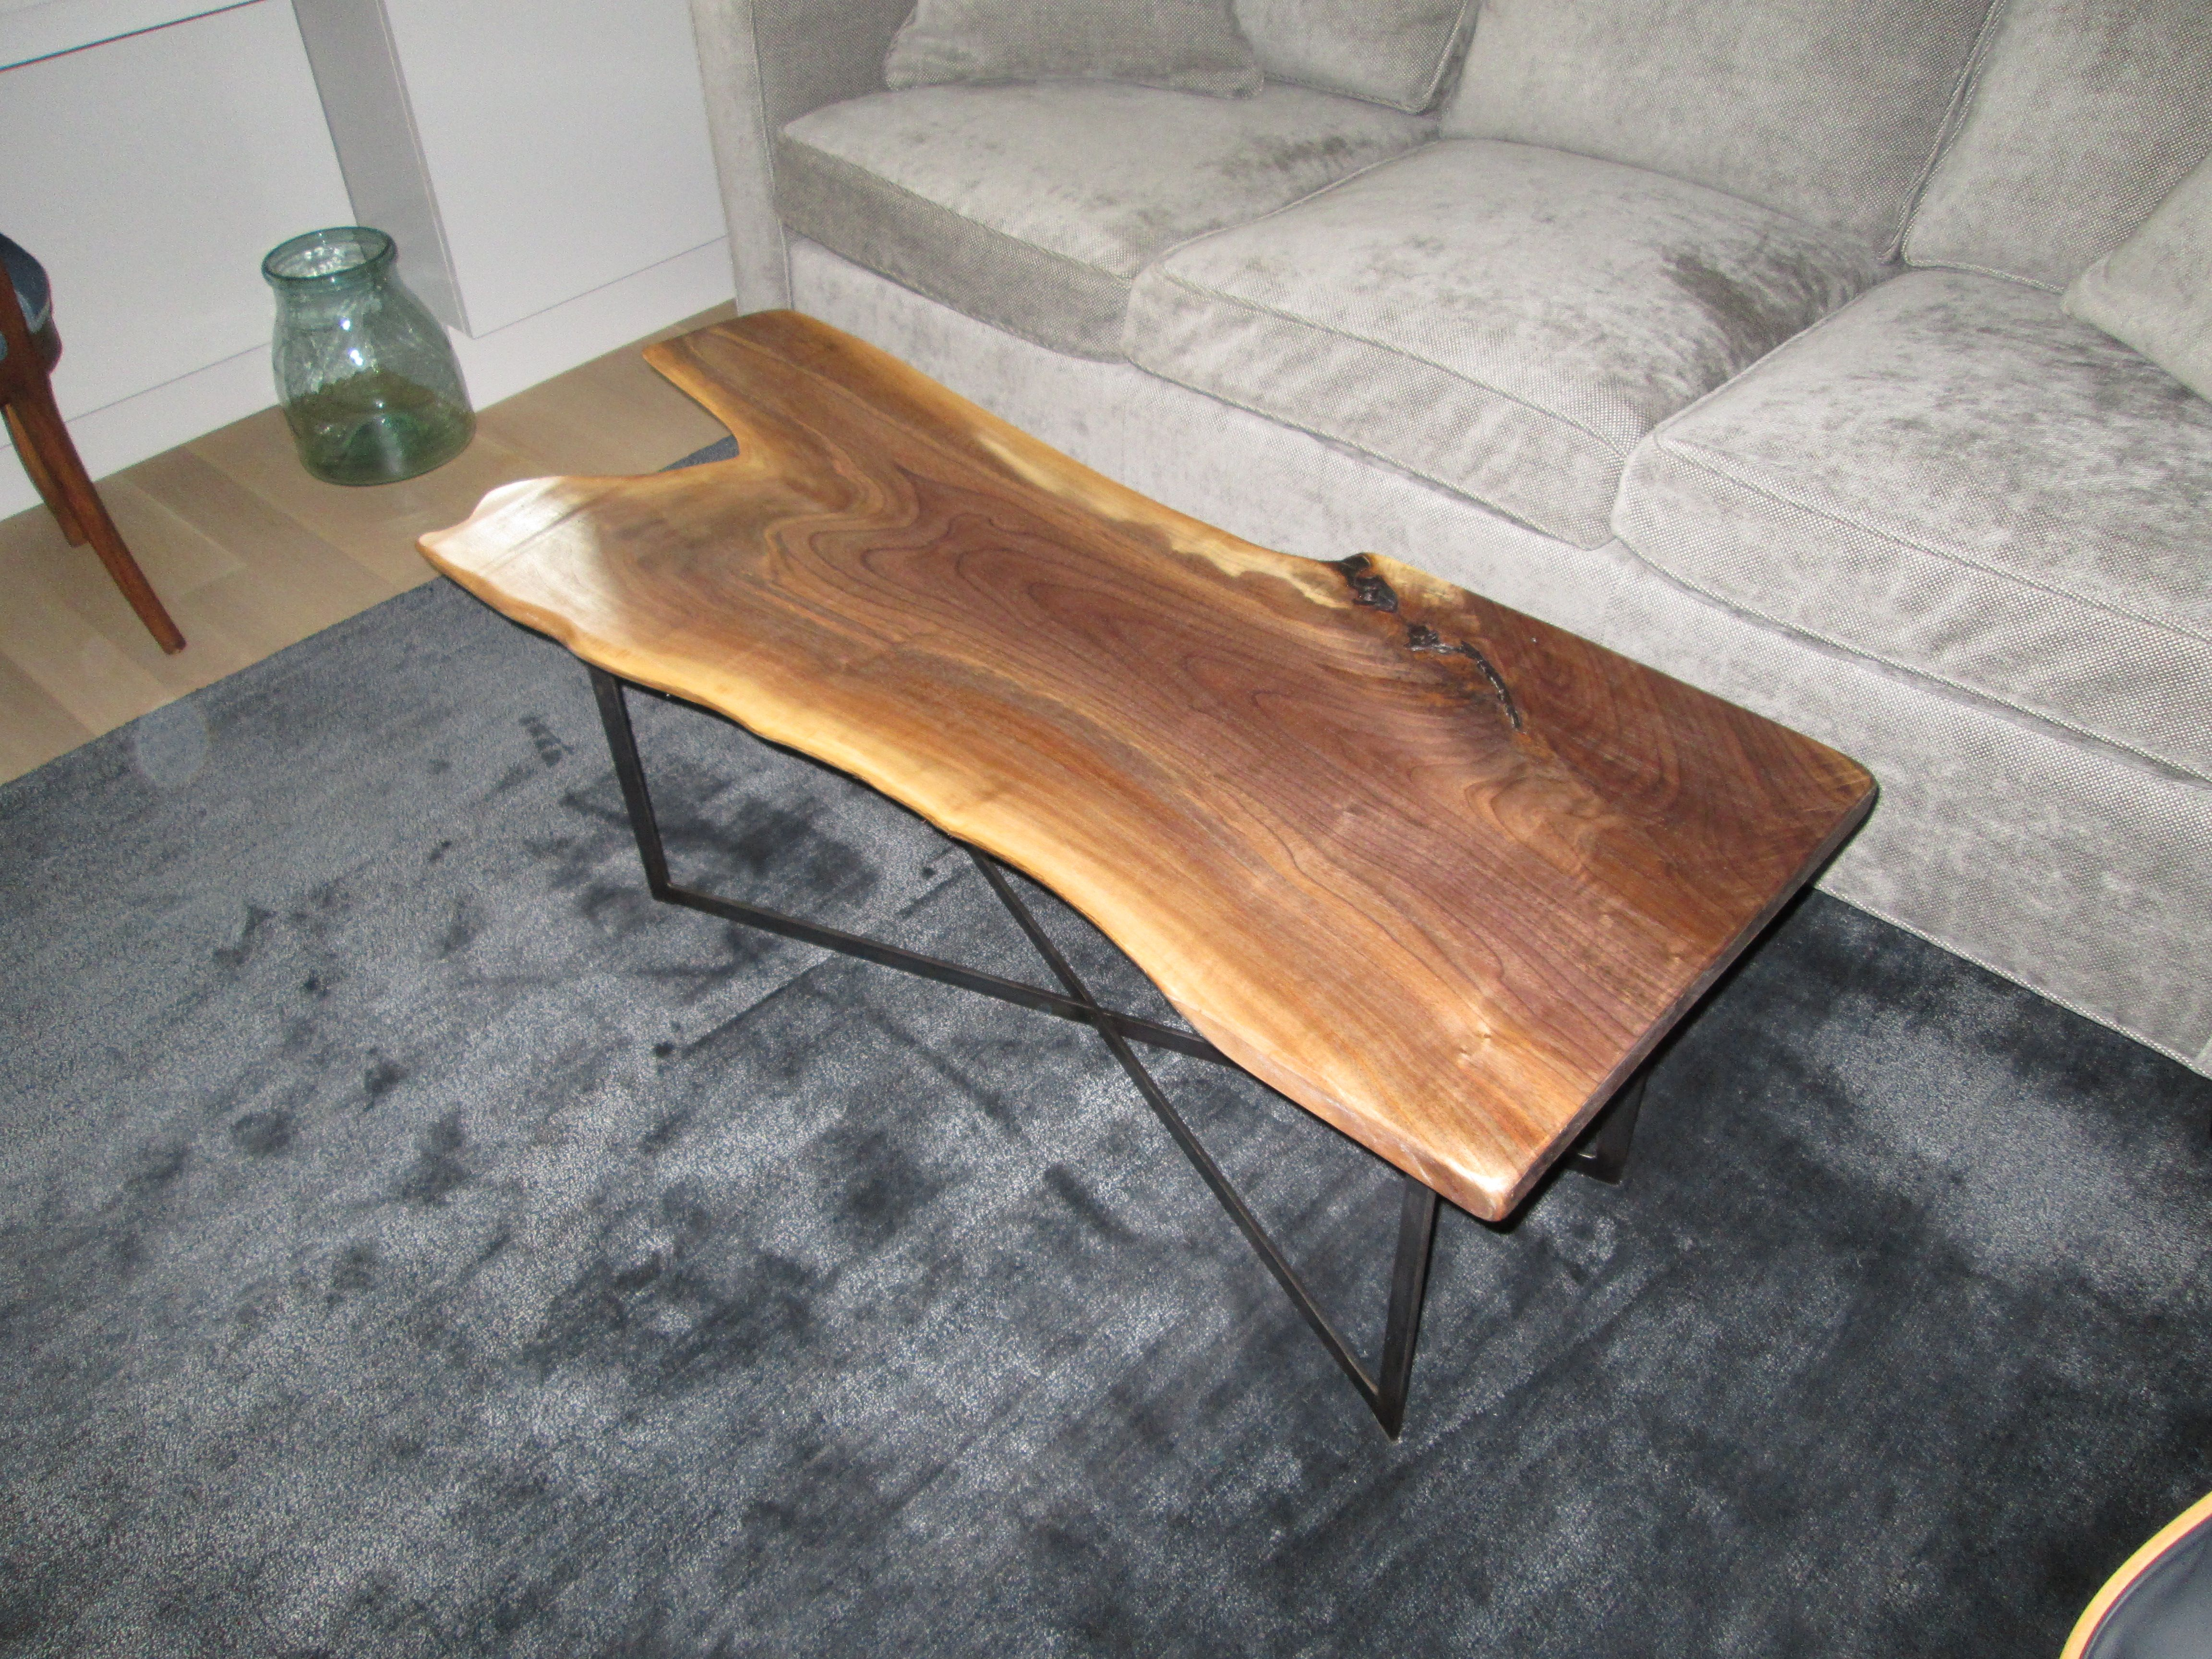 Handmade Live Edge Black Walnut Coffee Table By Iron Boar